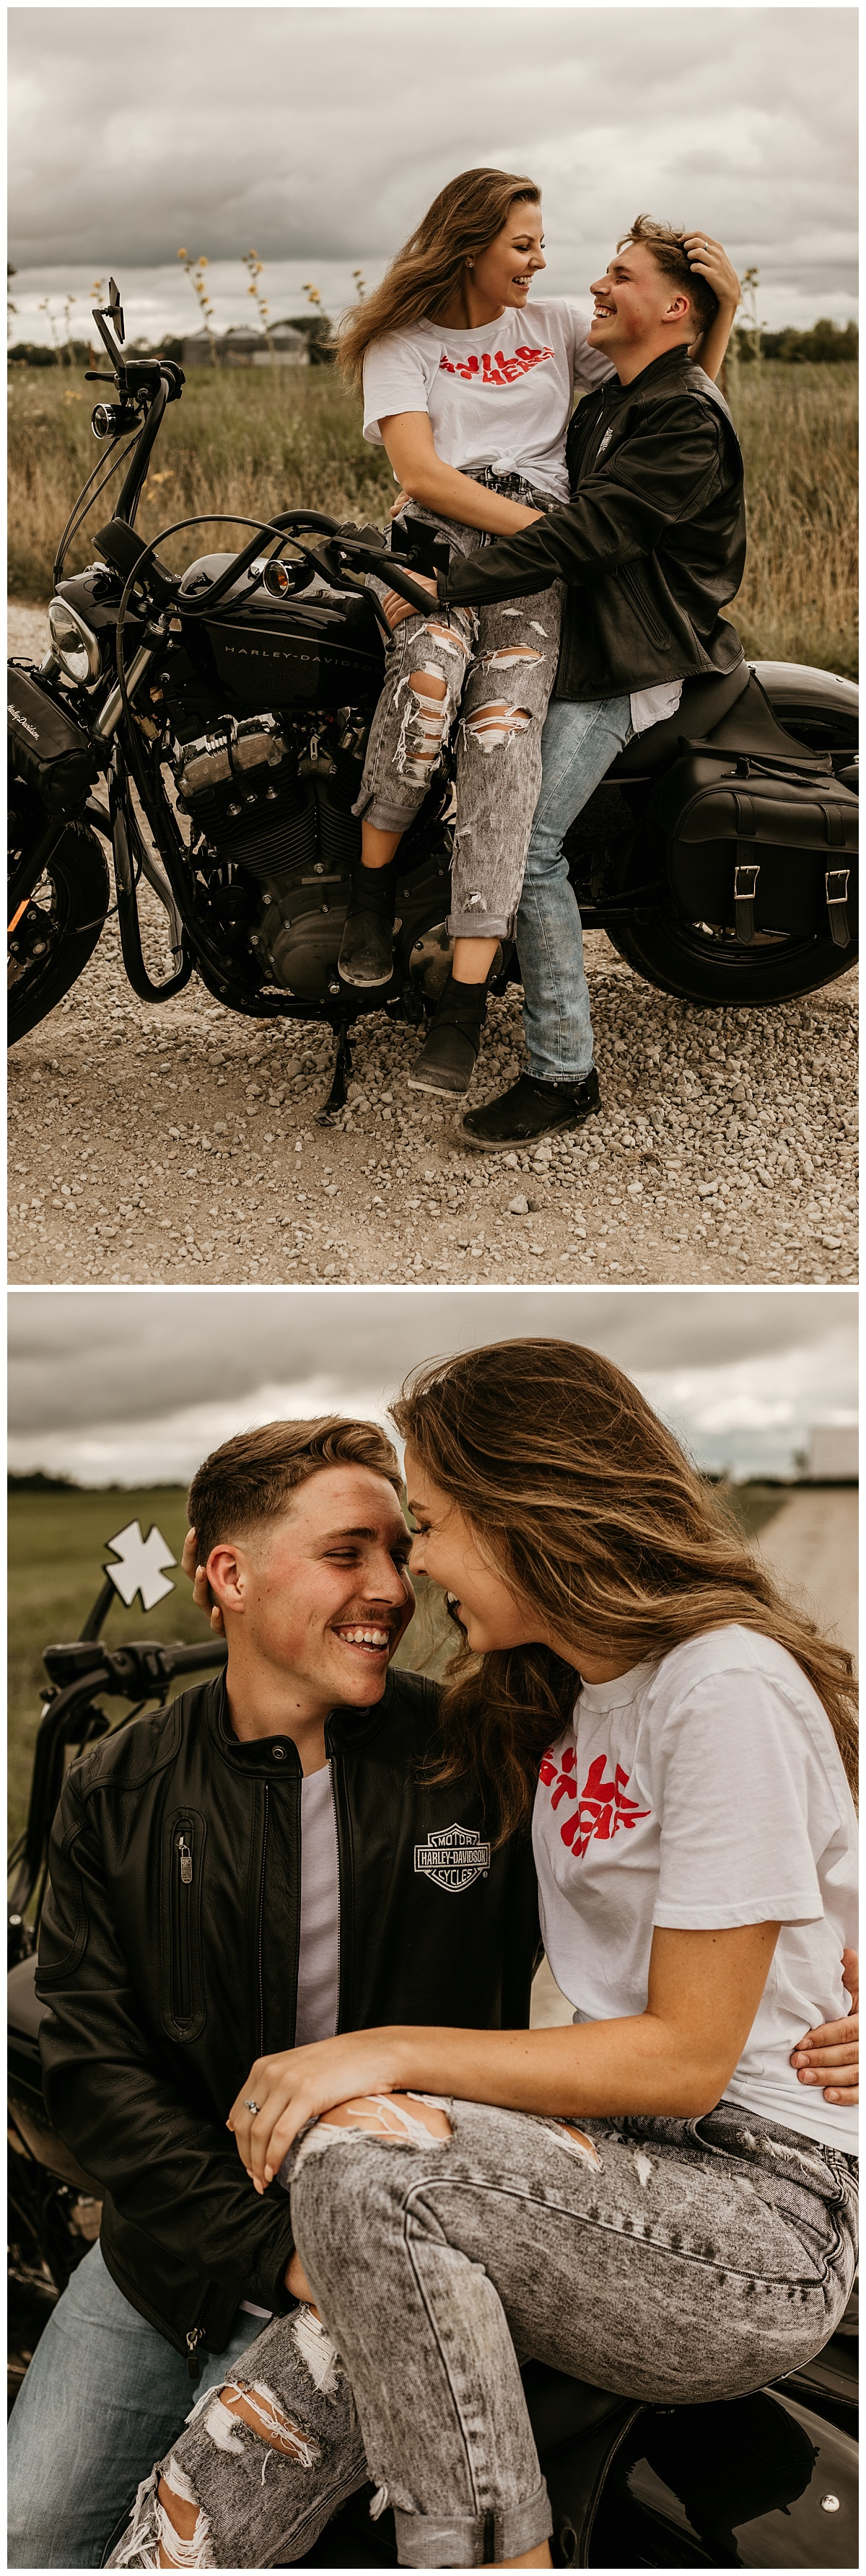 motorcycle session | adventure session | engagement session | motorcycle photos | lana del rey | ride or die | adventurous couple | kansas city photographer | kansas city photography